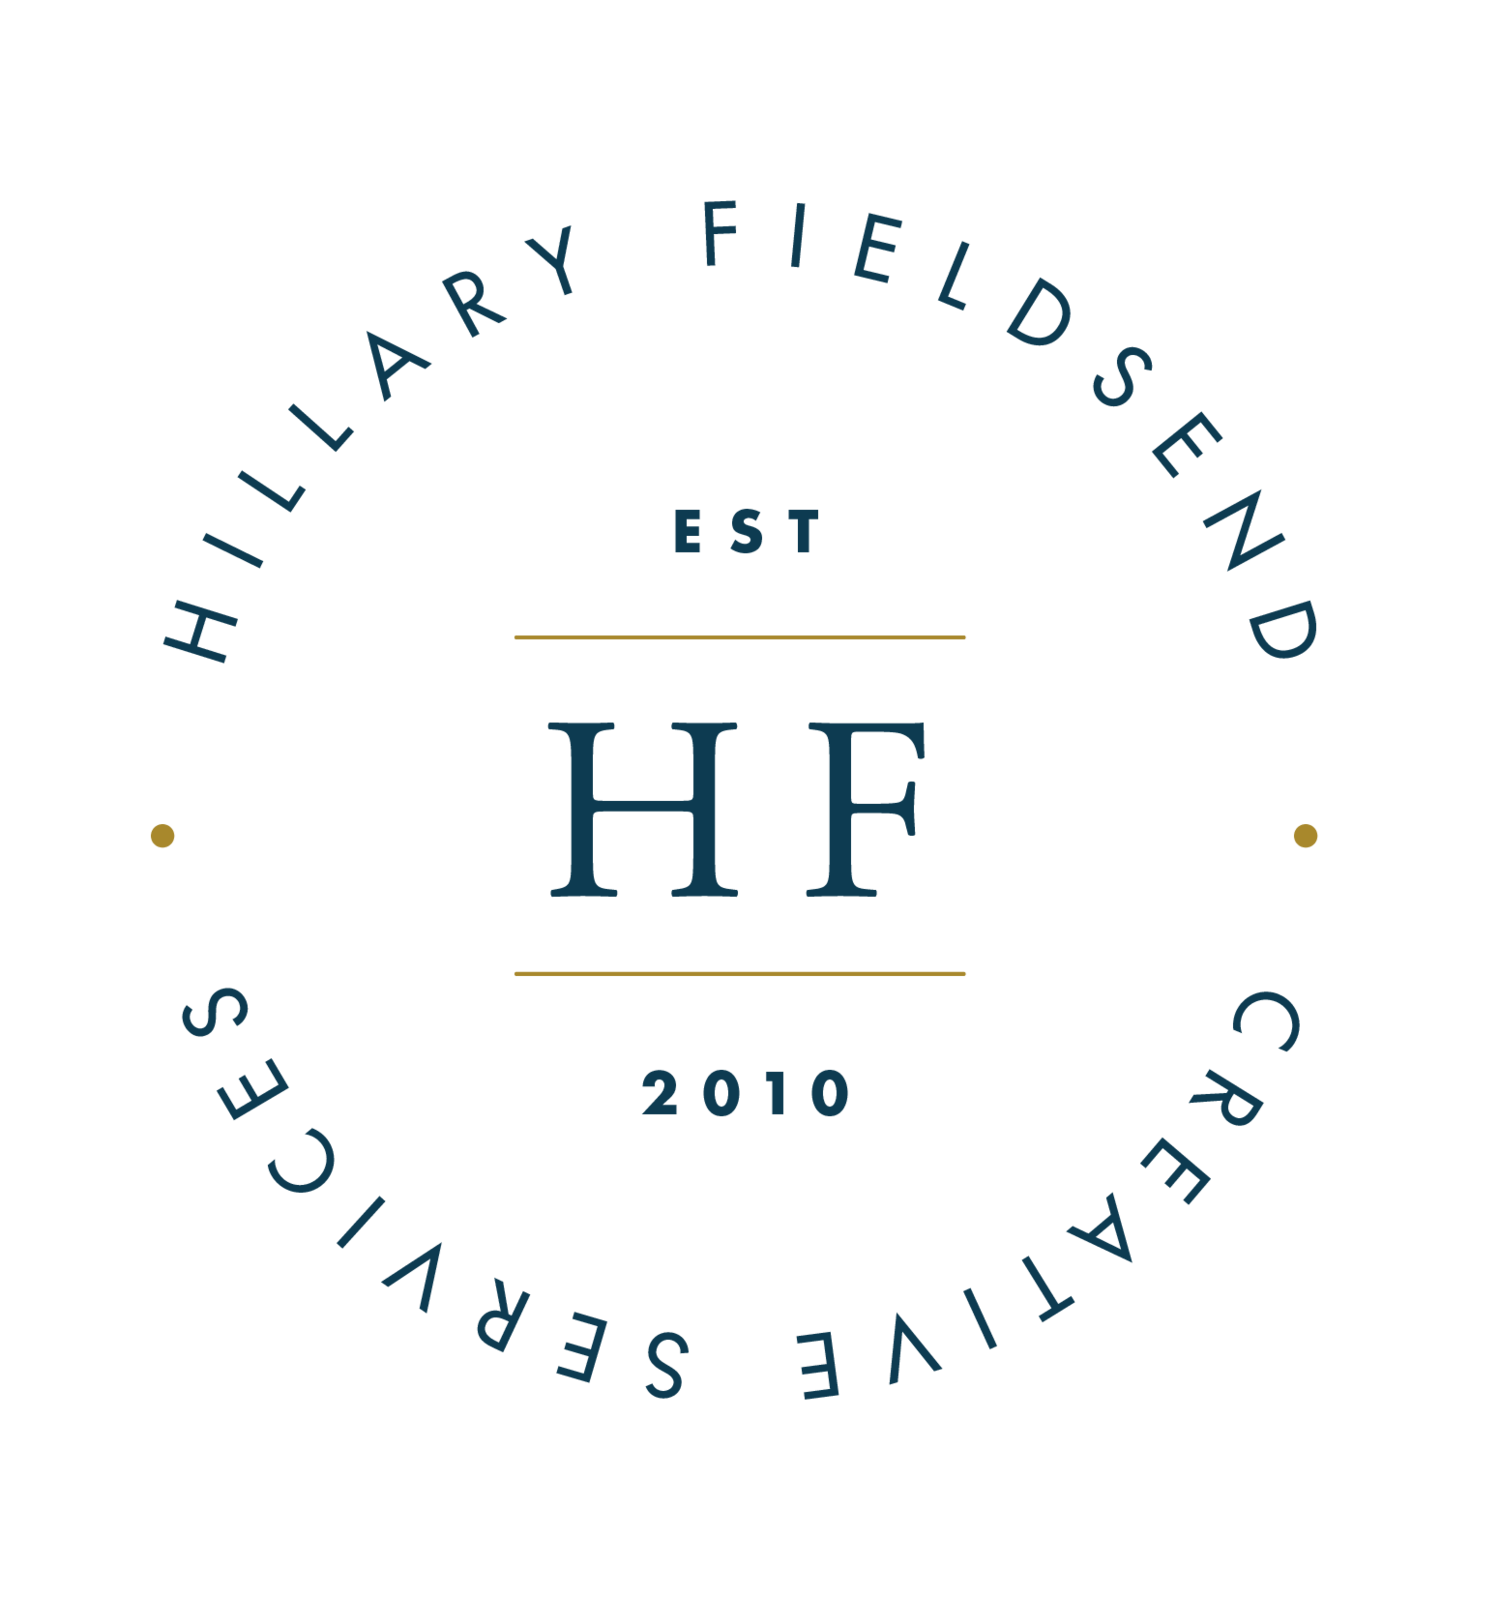 hillary fieldsend // creative services